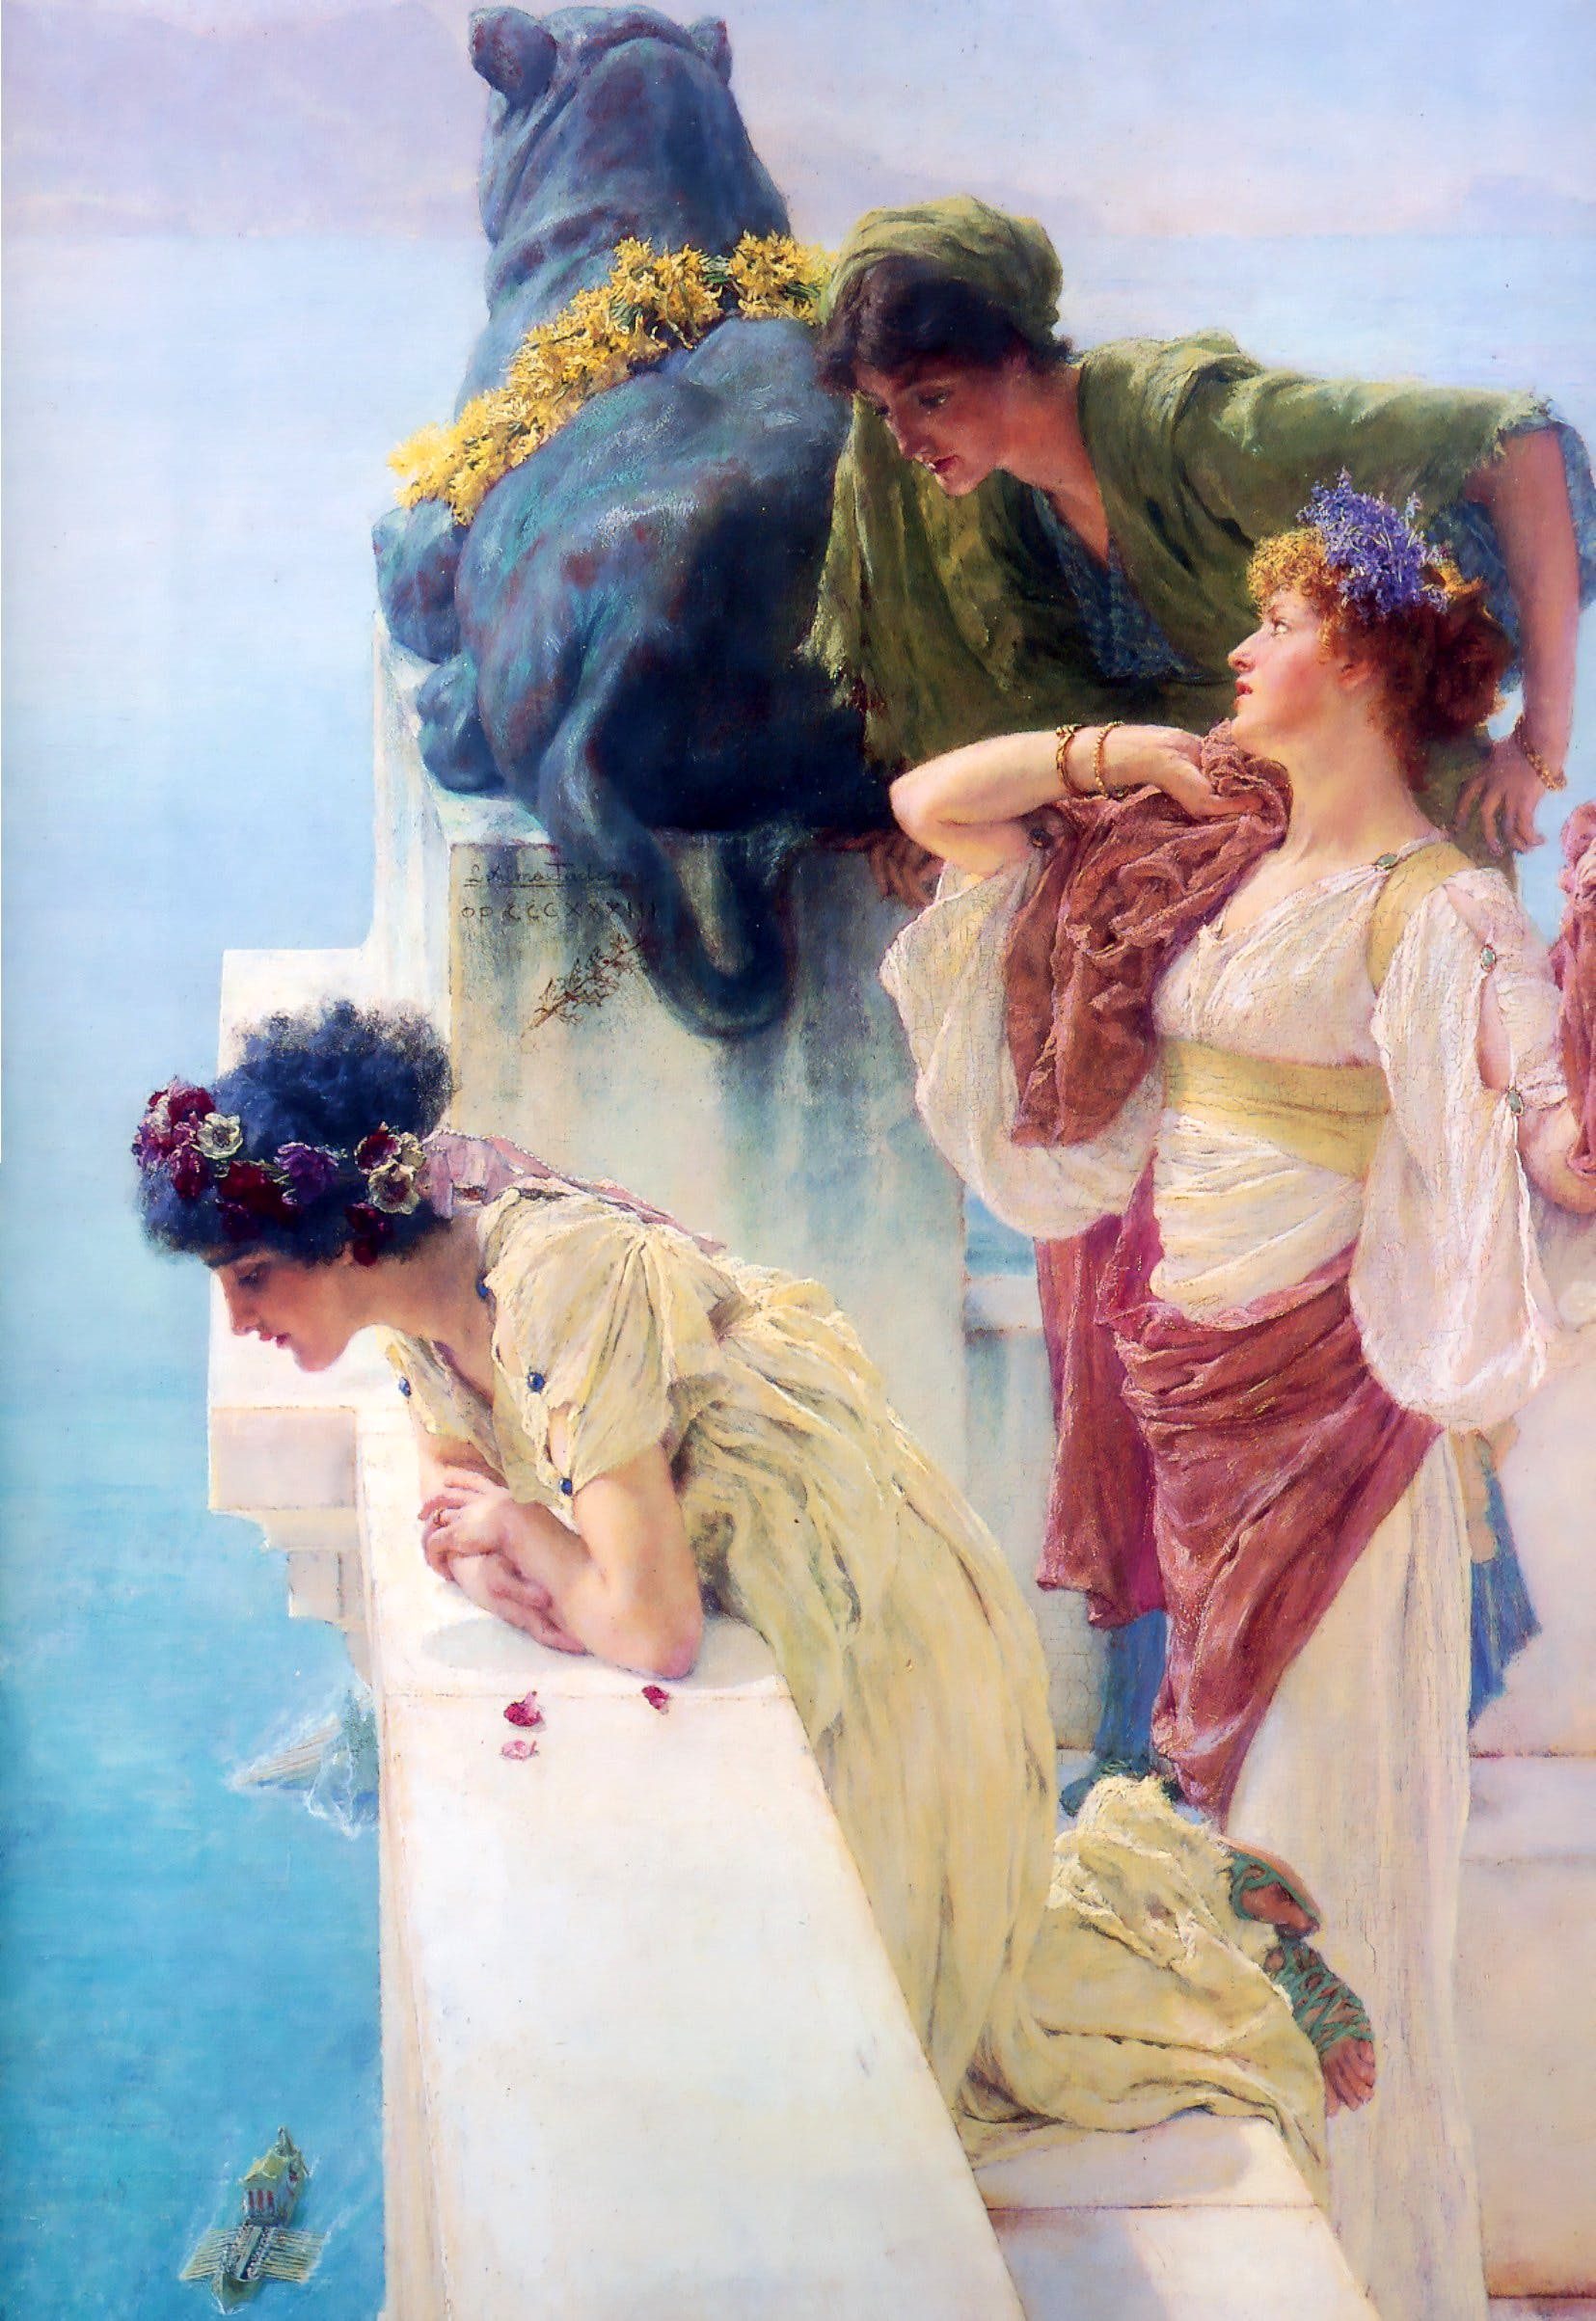 A Coign of Vantage (1895), Lawrence Alma-Tadema. Private collection. Wikimedia commons